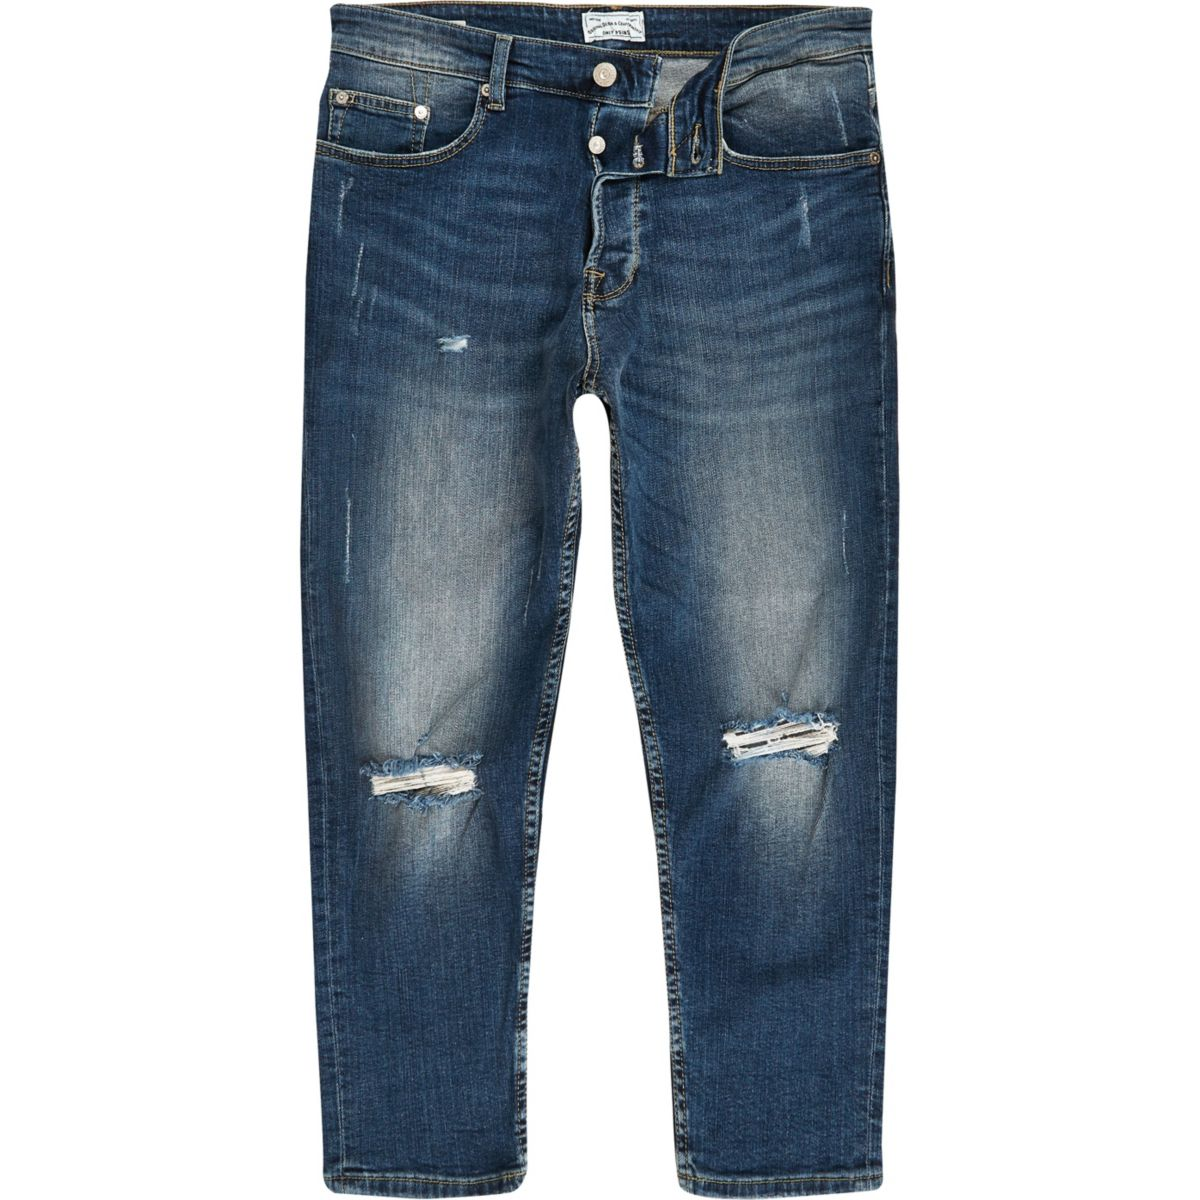 Only & Sons blue rip cropped anti fit jeans